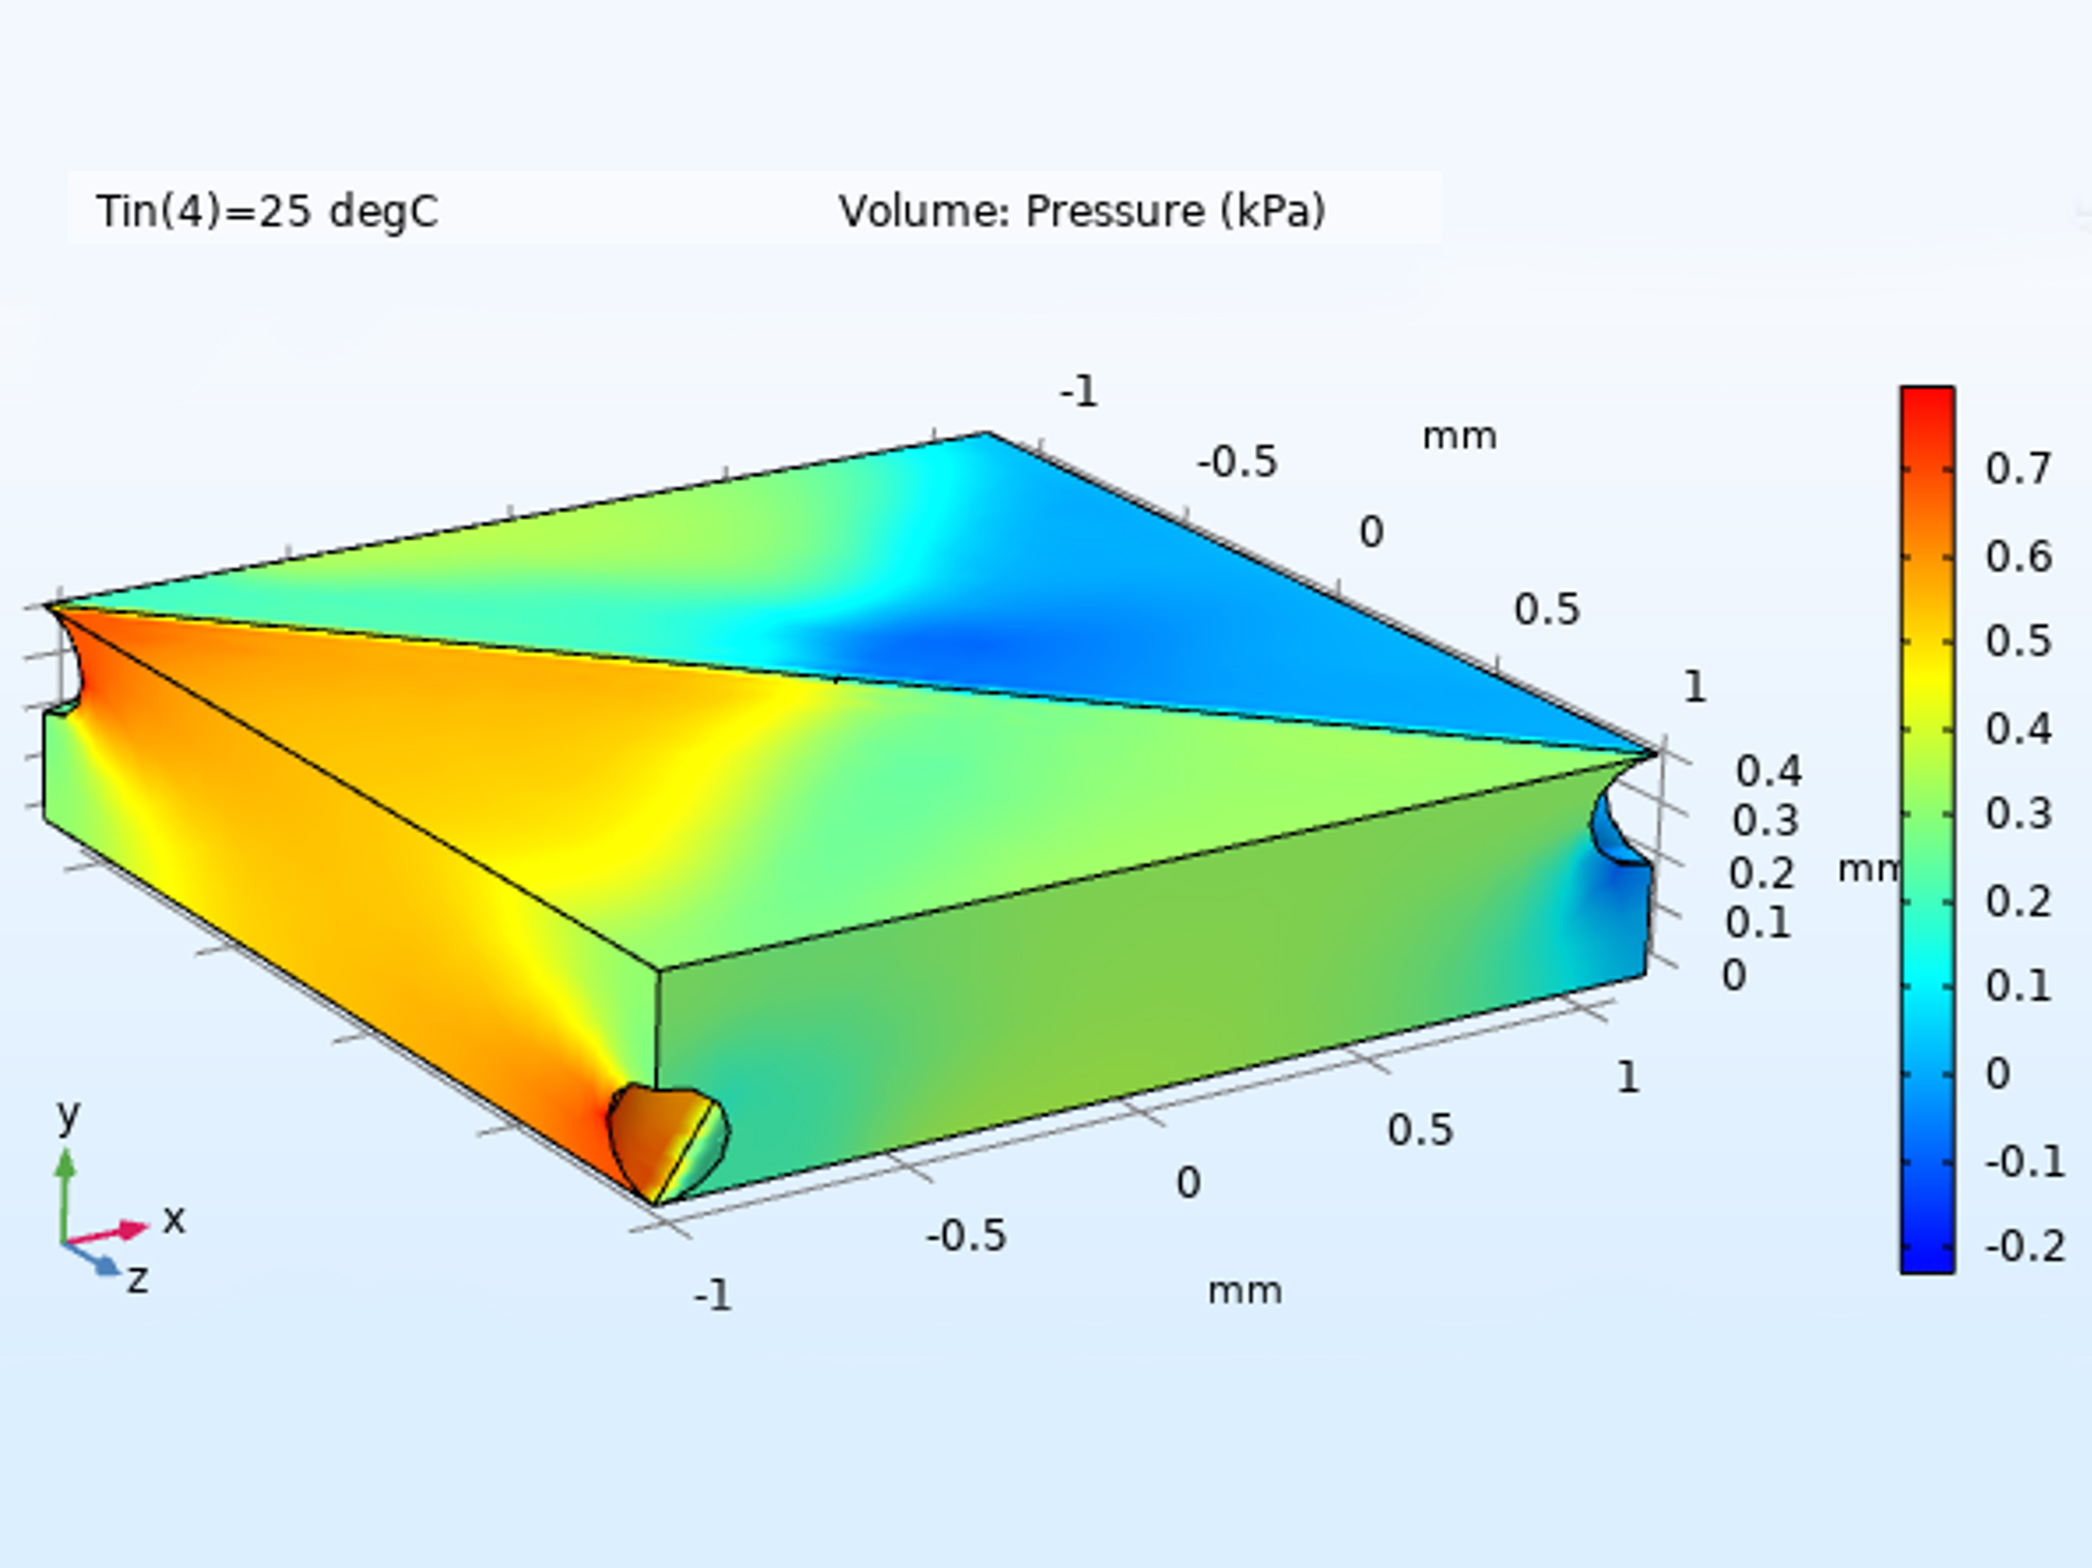 Project: Product performance simulation using computational fluid dynamics (CFD) modelling